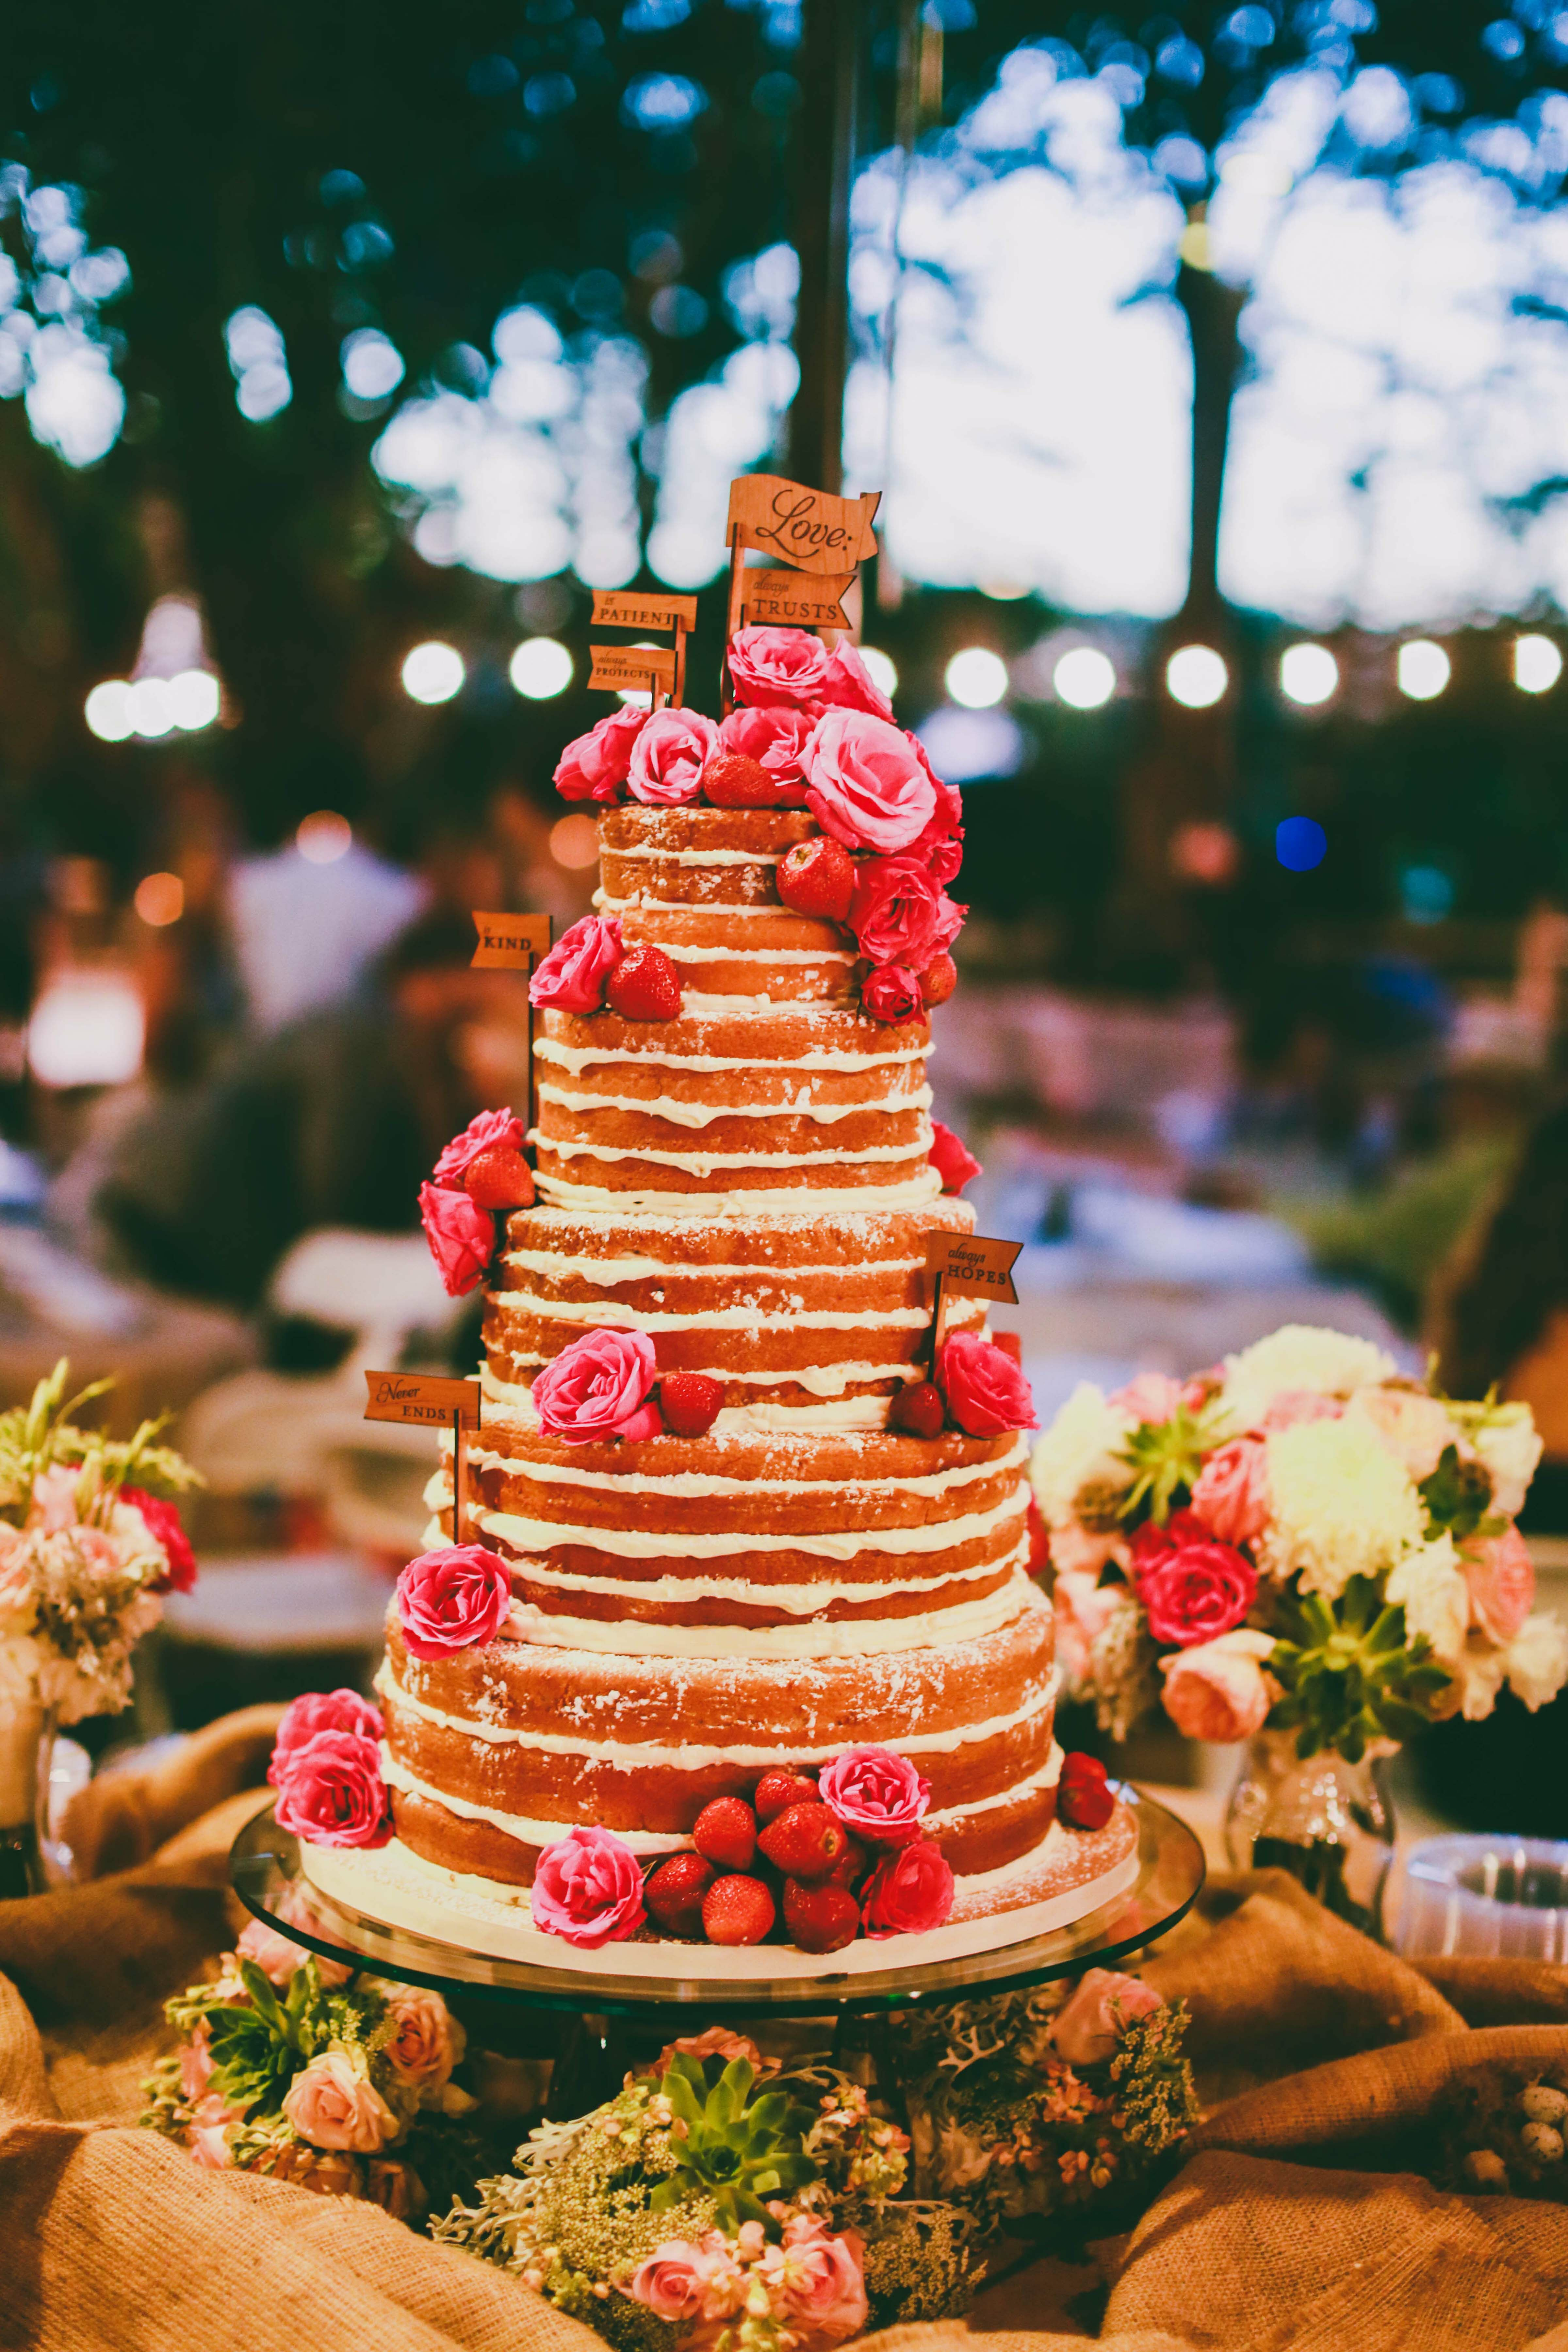 Naked Cake With Pink Floral Accents-3462